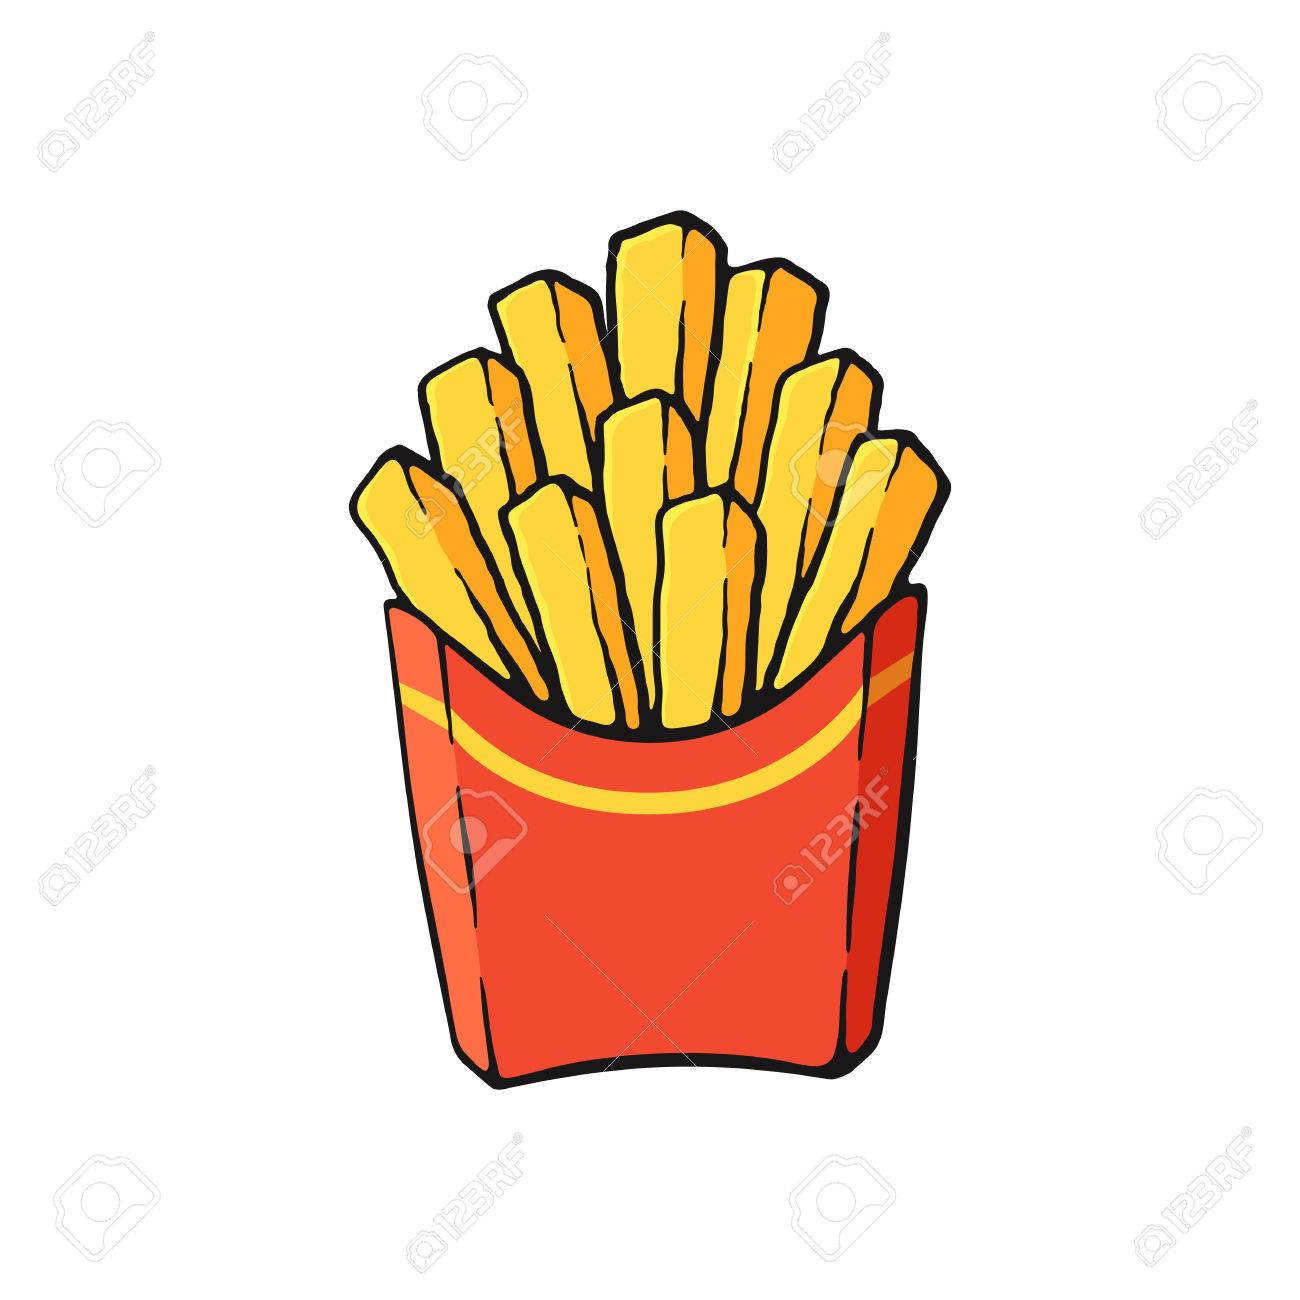 French Fries Clipart papas fritas 4 - 1300 X 1300 Free Clip ... banner transparent